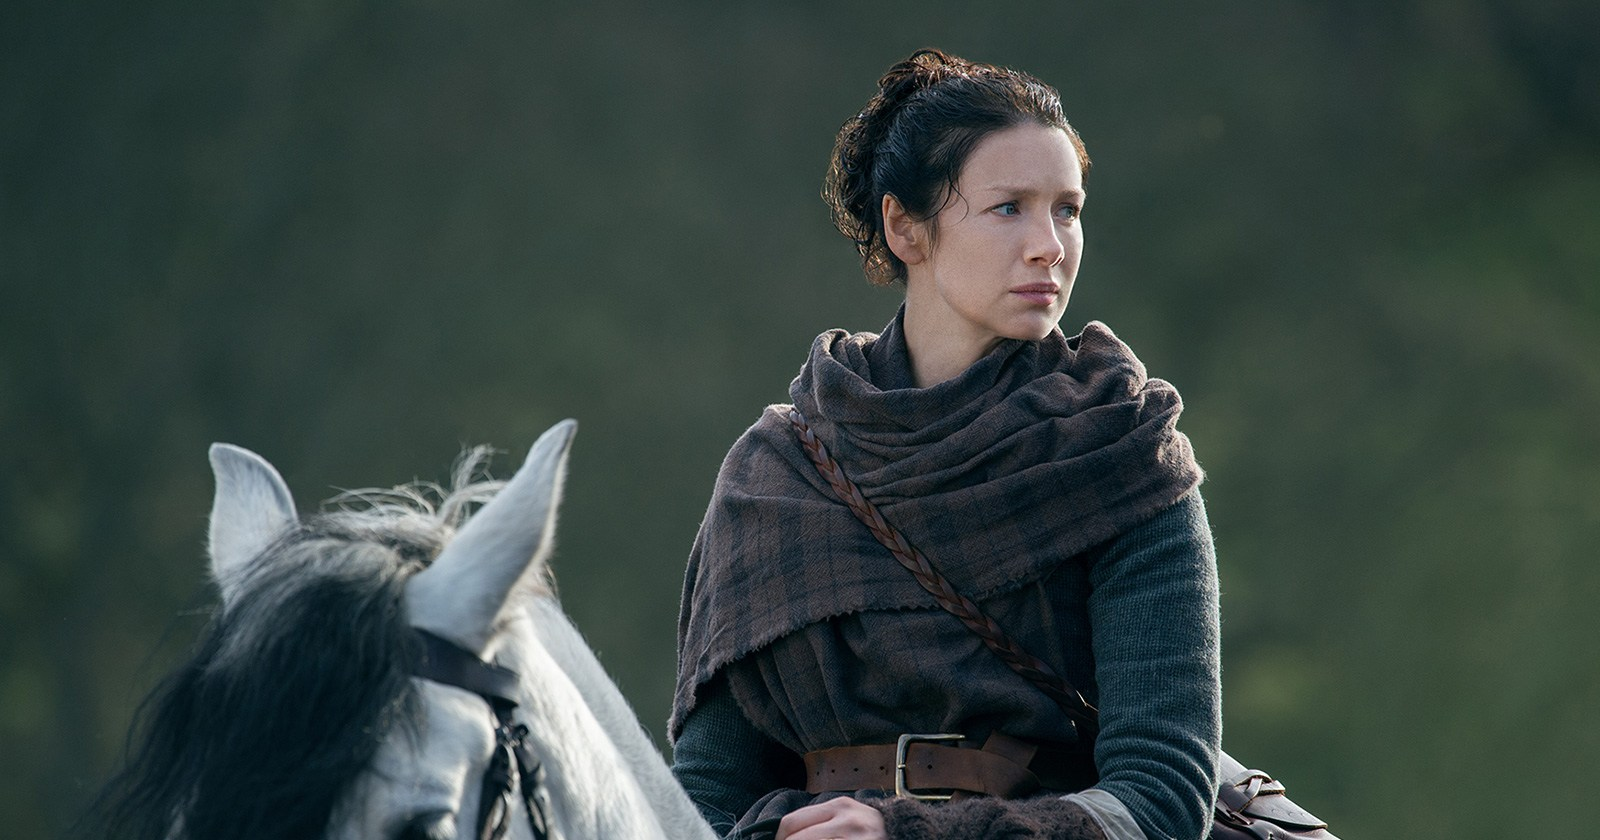 'Outlander' Recap: Jack Randall Gets Married and Beats Up a Corpse, While Claire Fraser Gets a Shocking Suicide Request